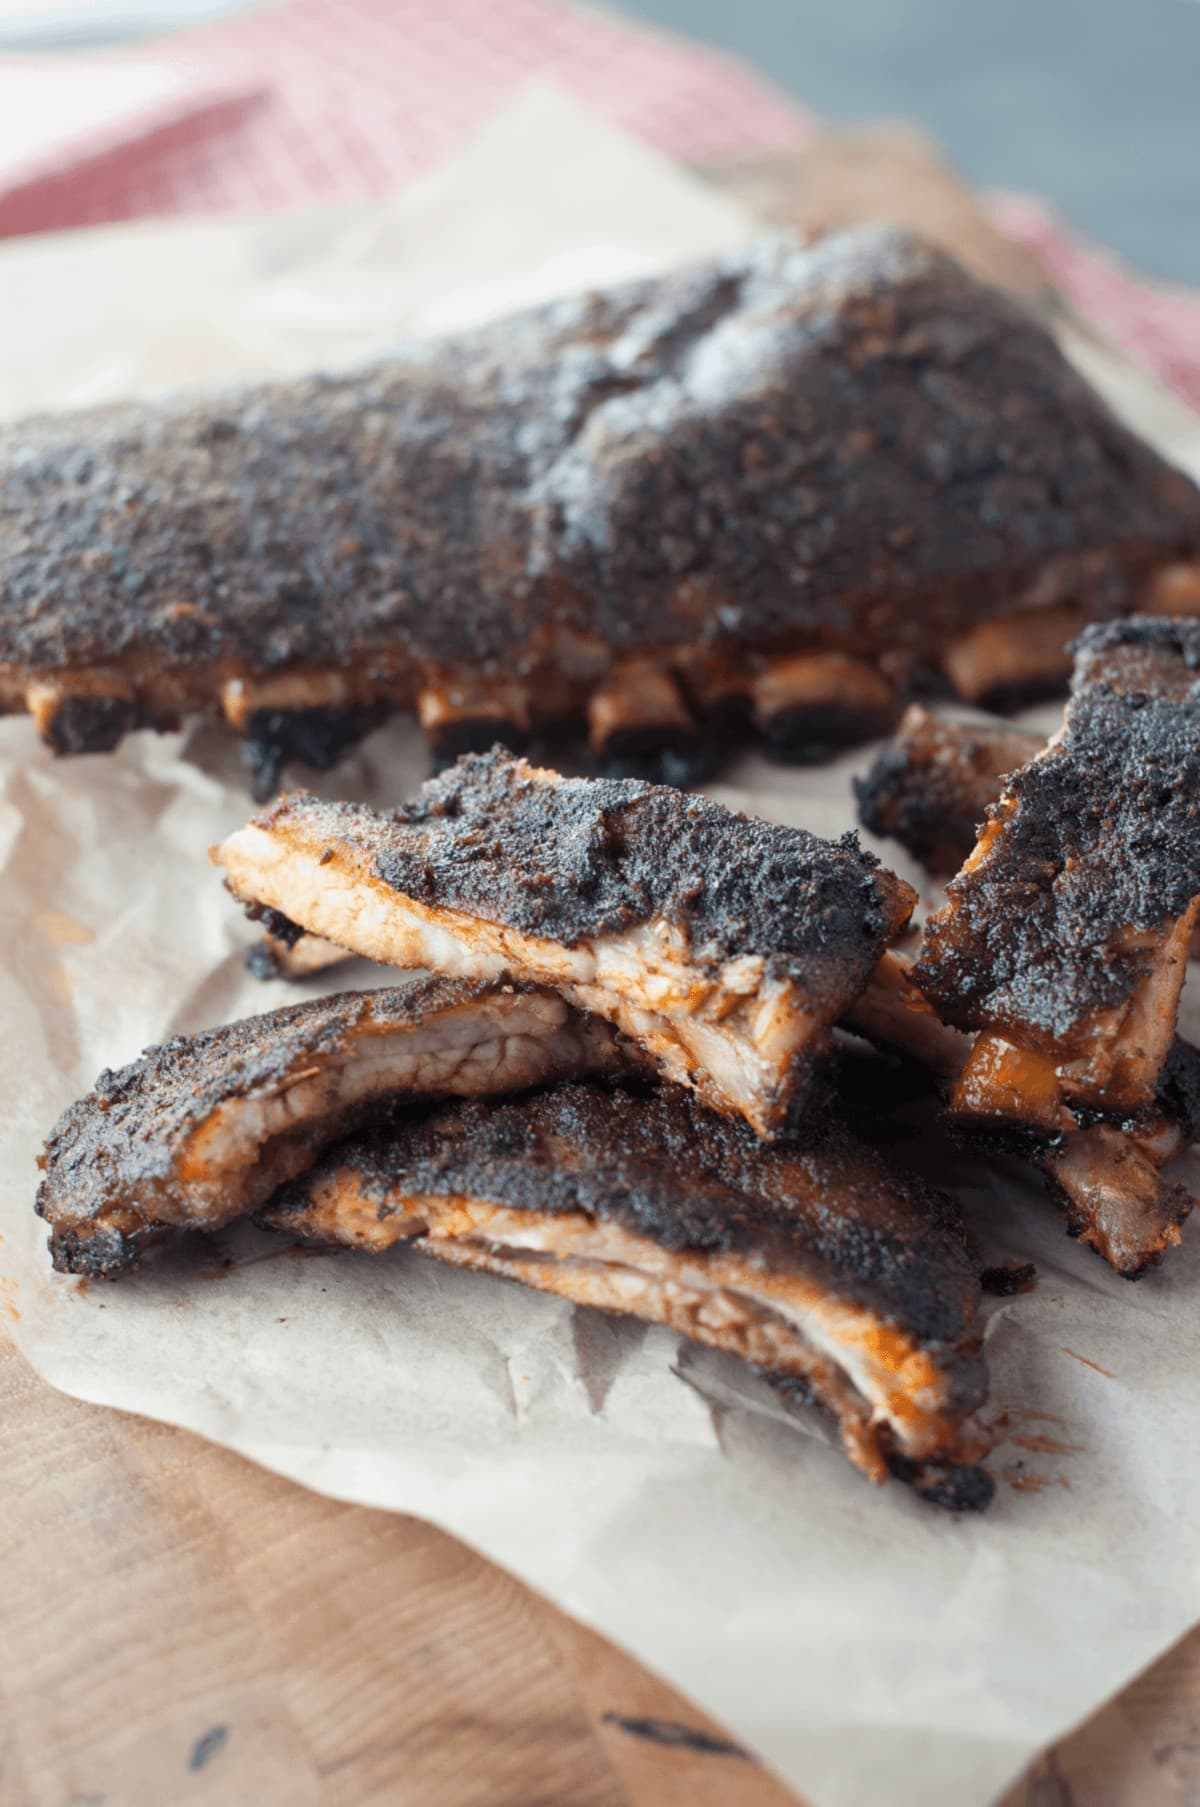 Keto Barbecue Dry Rub Ribs - From Craveable Keto Cookbook